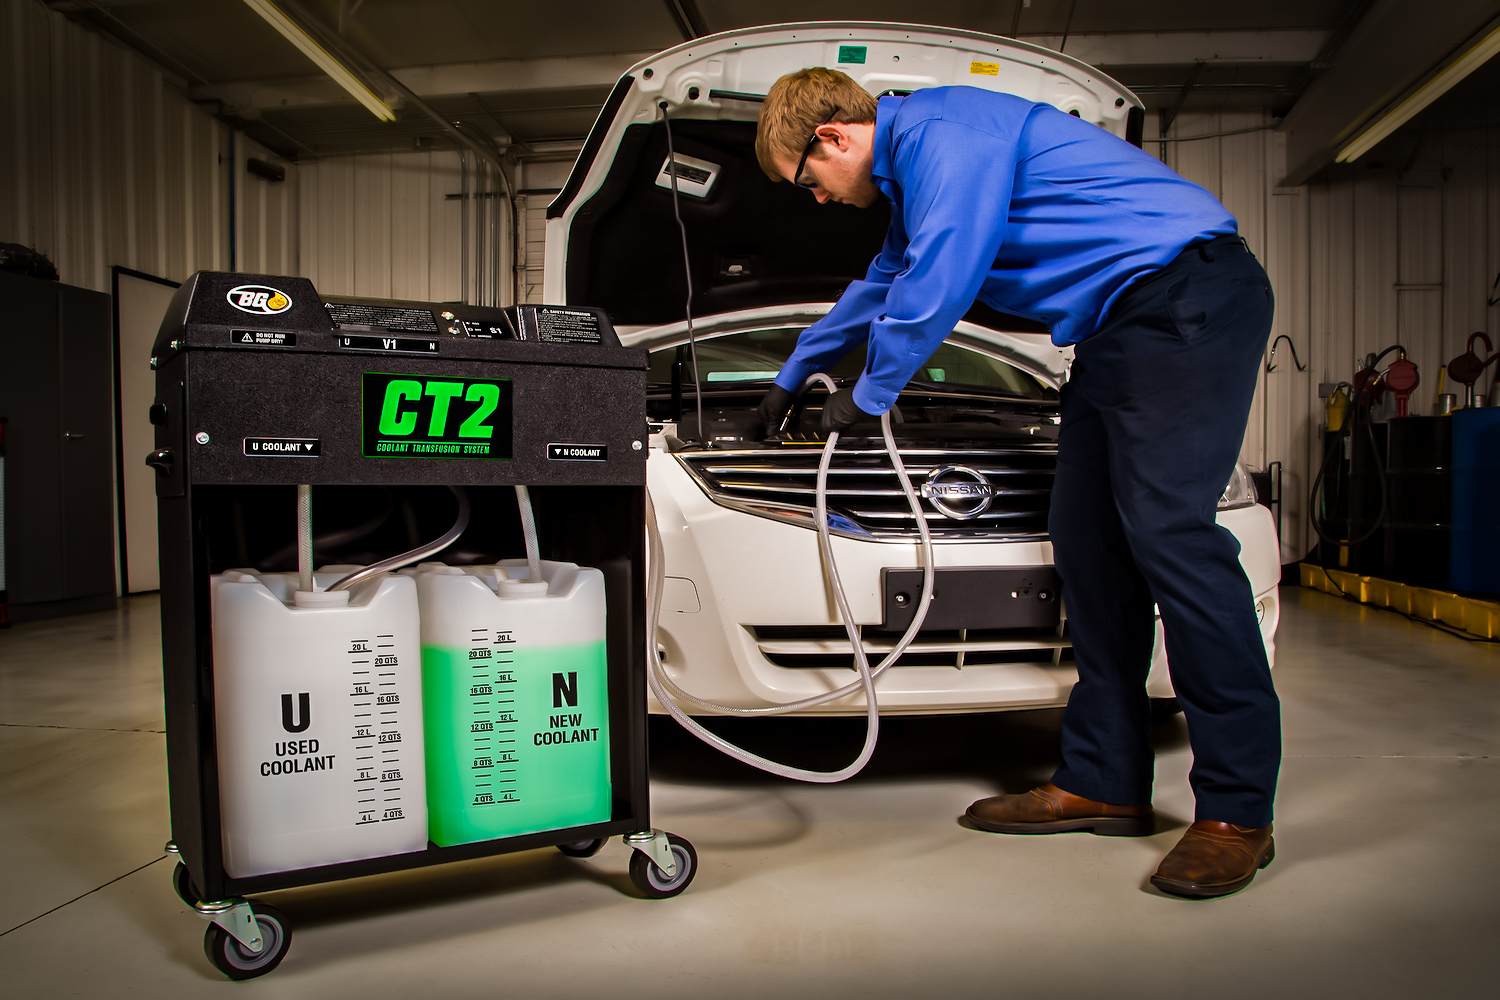 bg product coolant maintenance service being performed